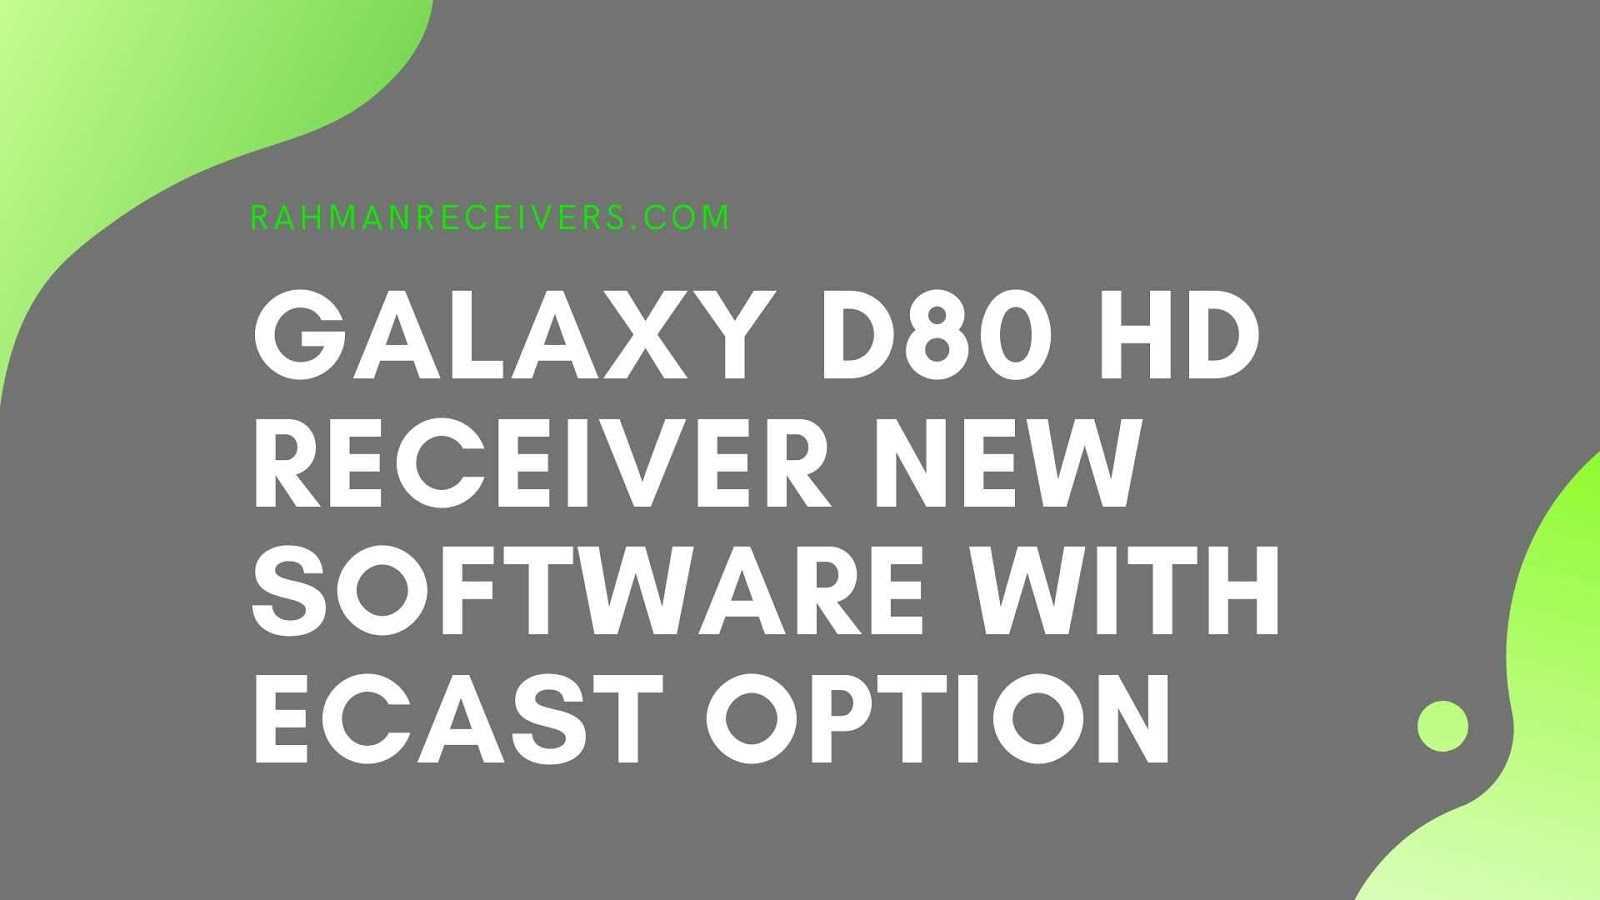 GALAXY D80 HD RECEIVER NEW SOFTWARE WITH ECAST OPTION 07 APRIL 2020